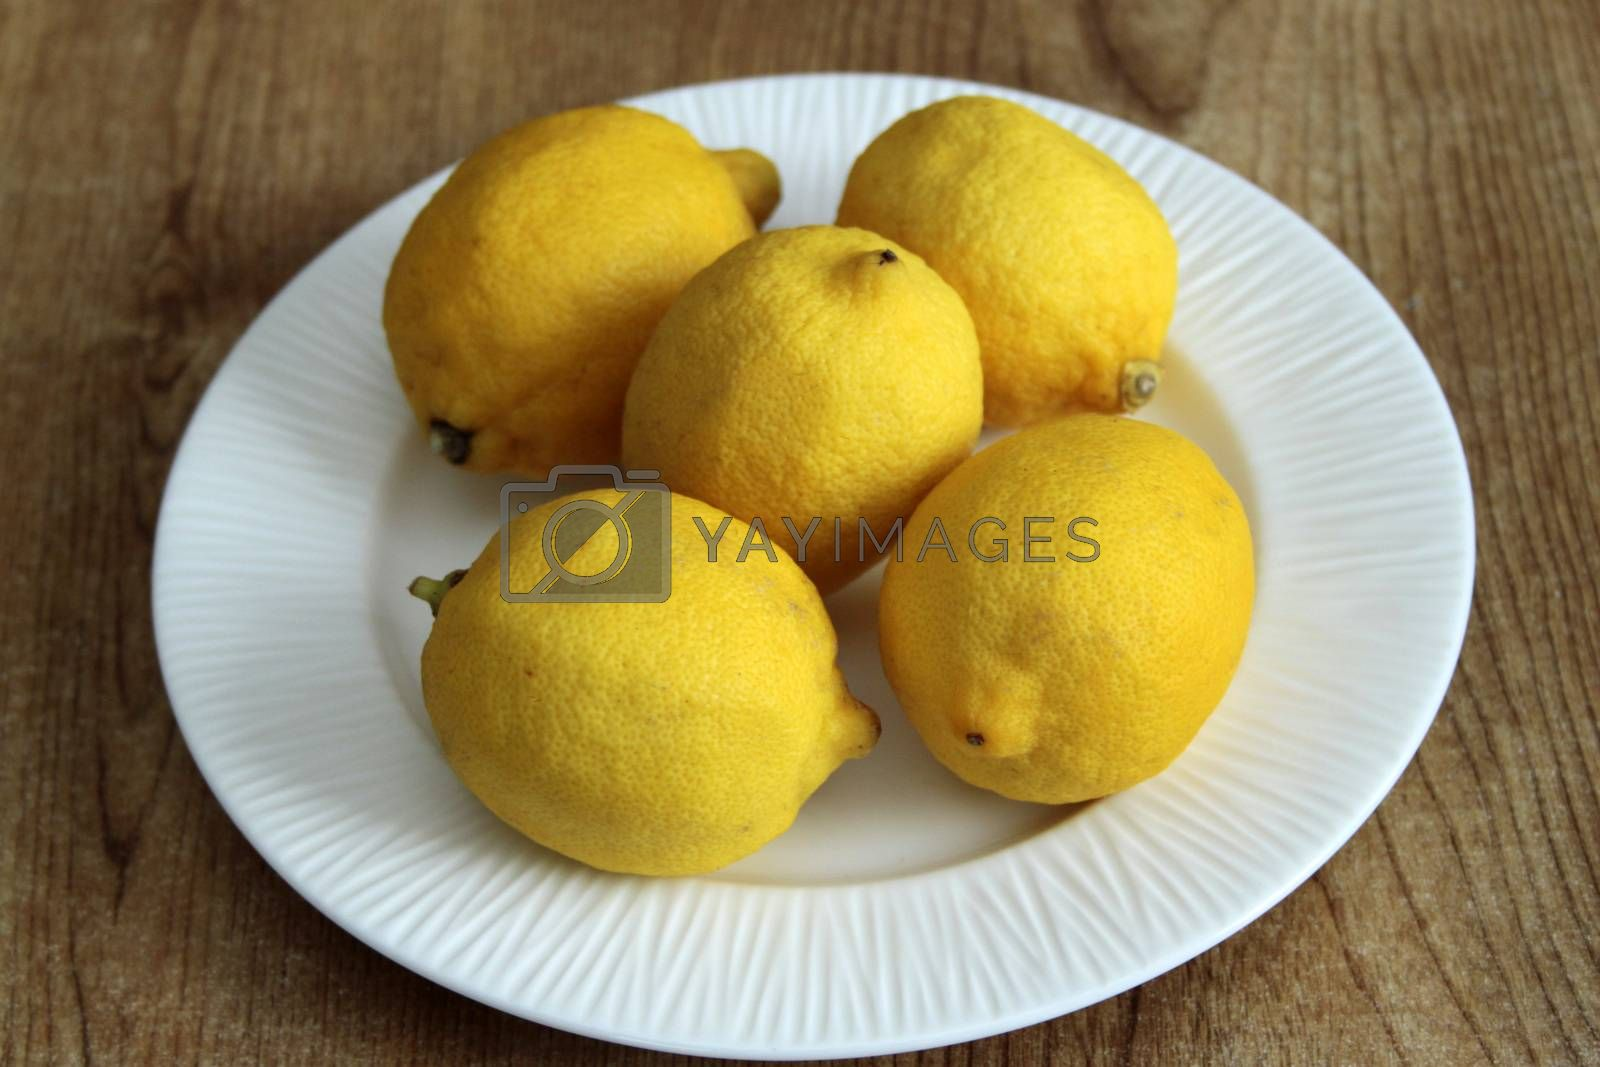 Royalty free image of Plate of Lemons by a_phoenix